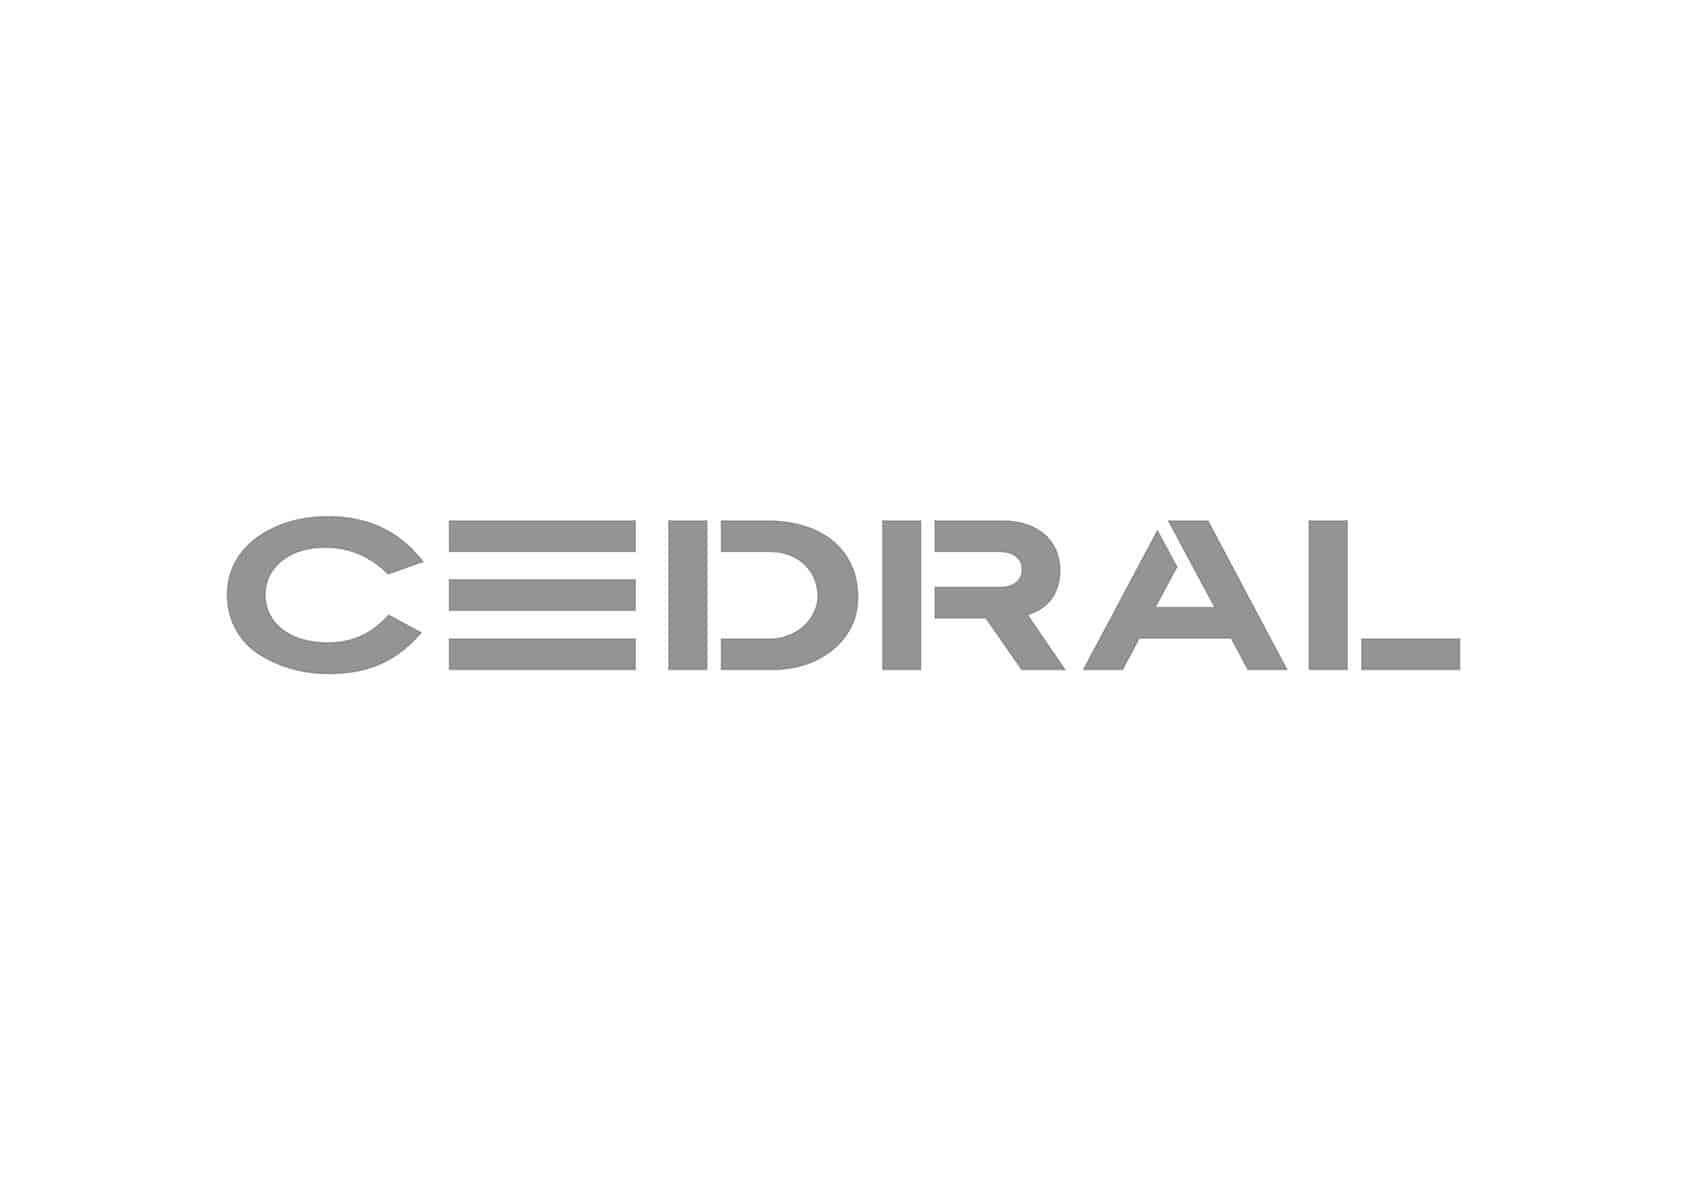 Cedral weatherboard logo